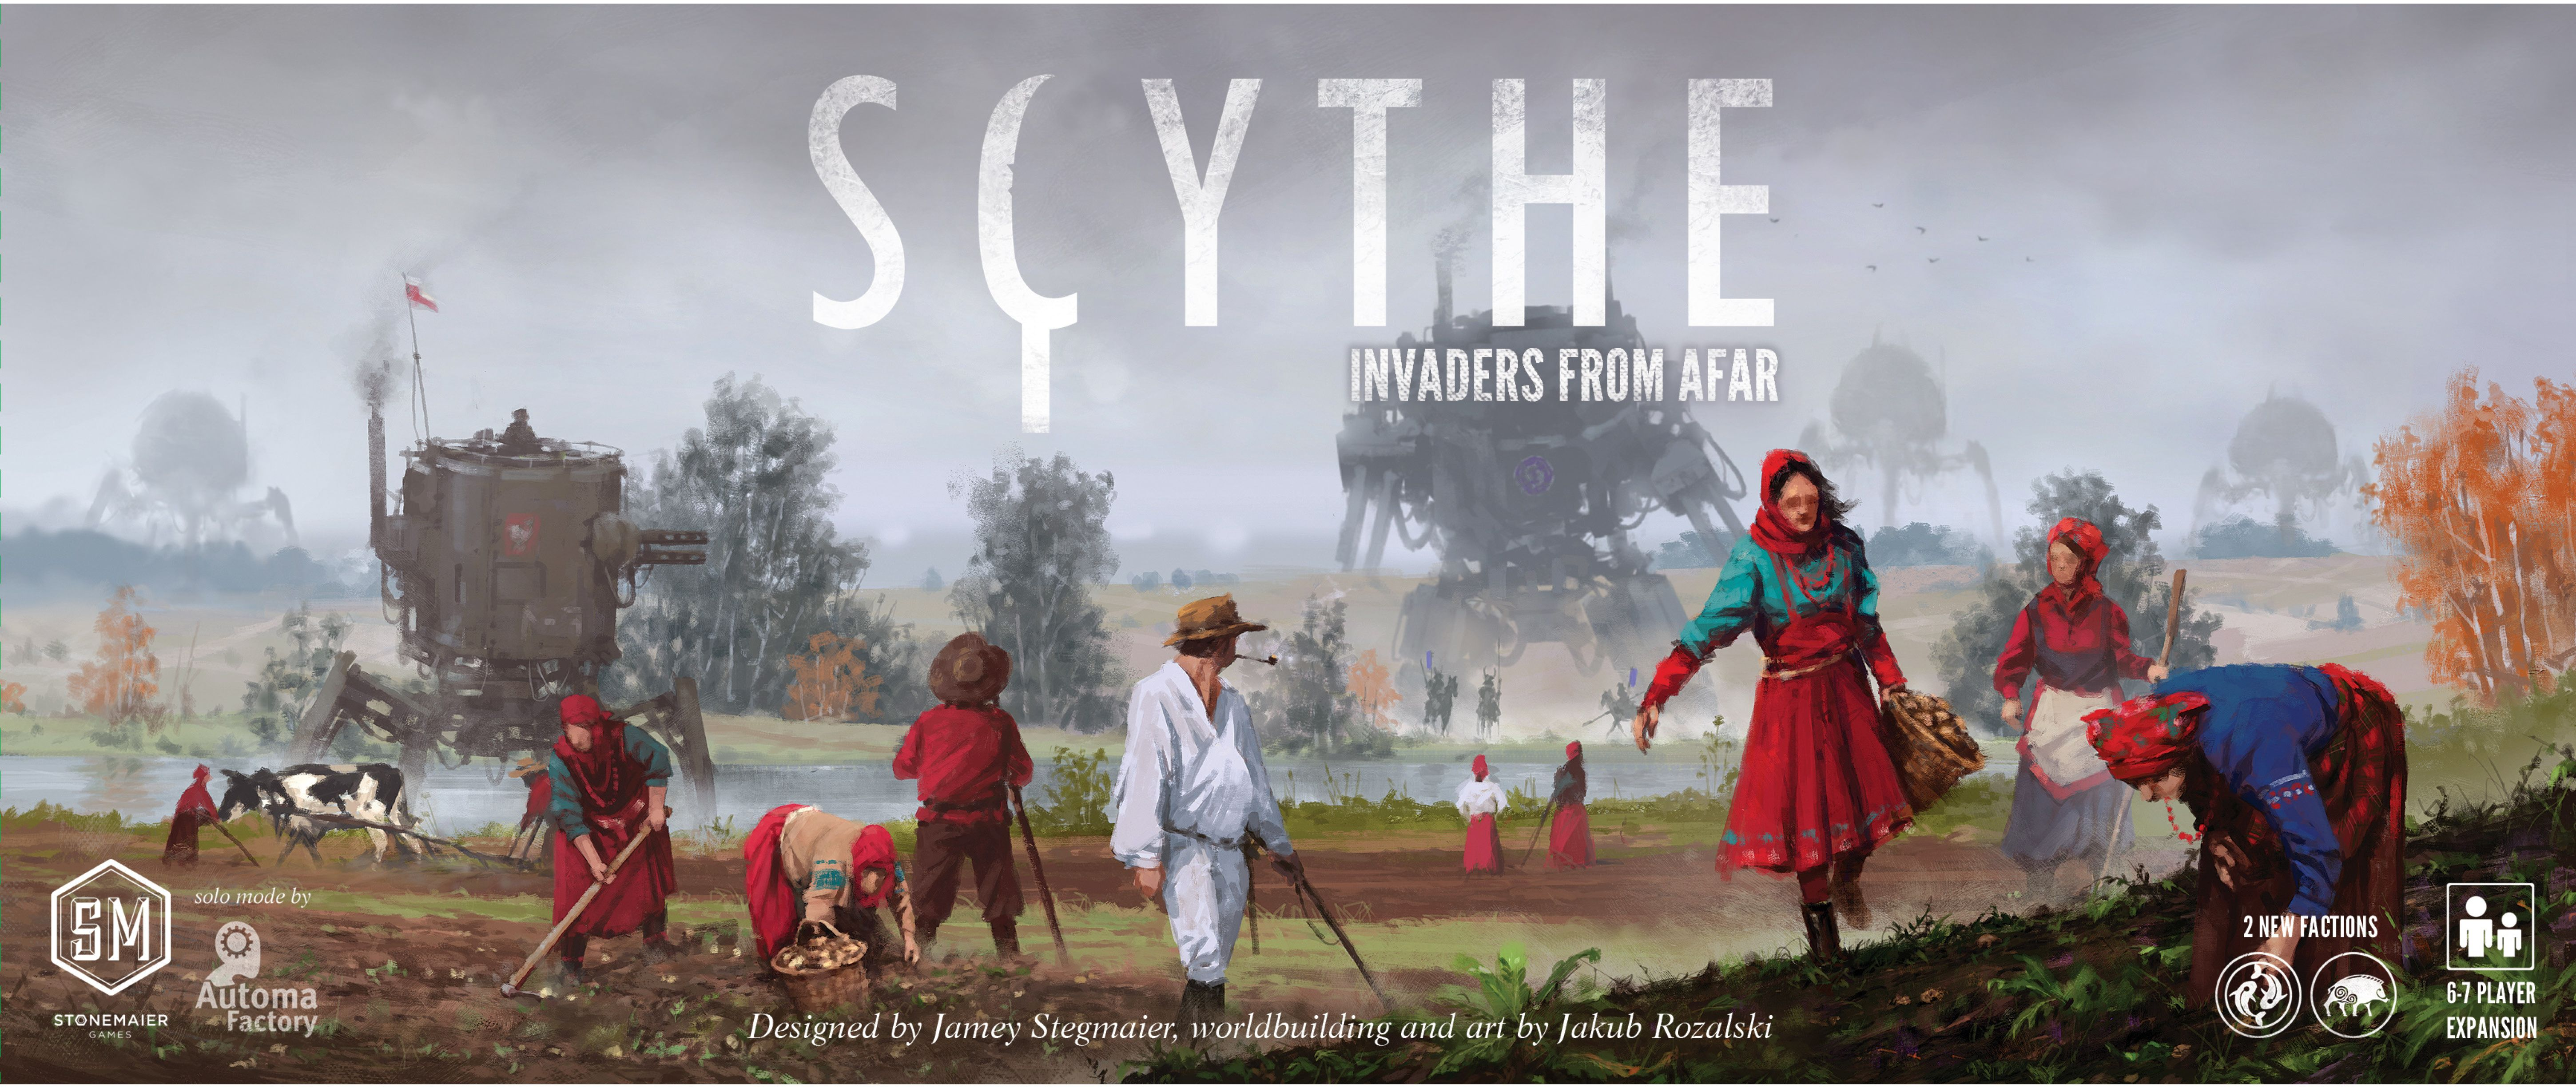 Scythe Invaders from Afar Werewolf, Artist, Board games